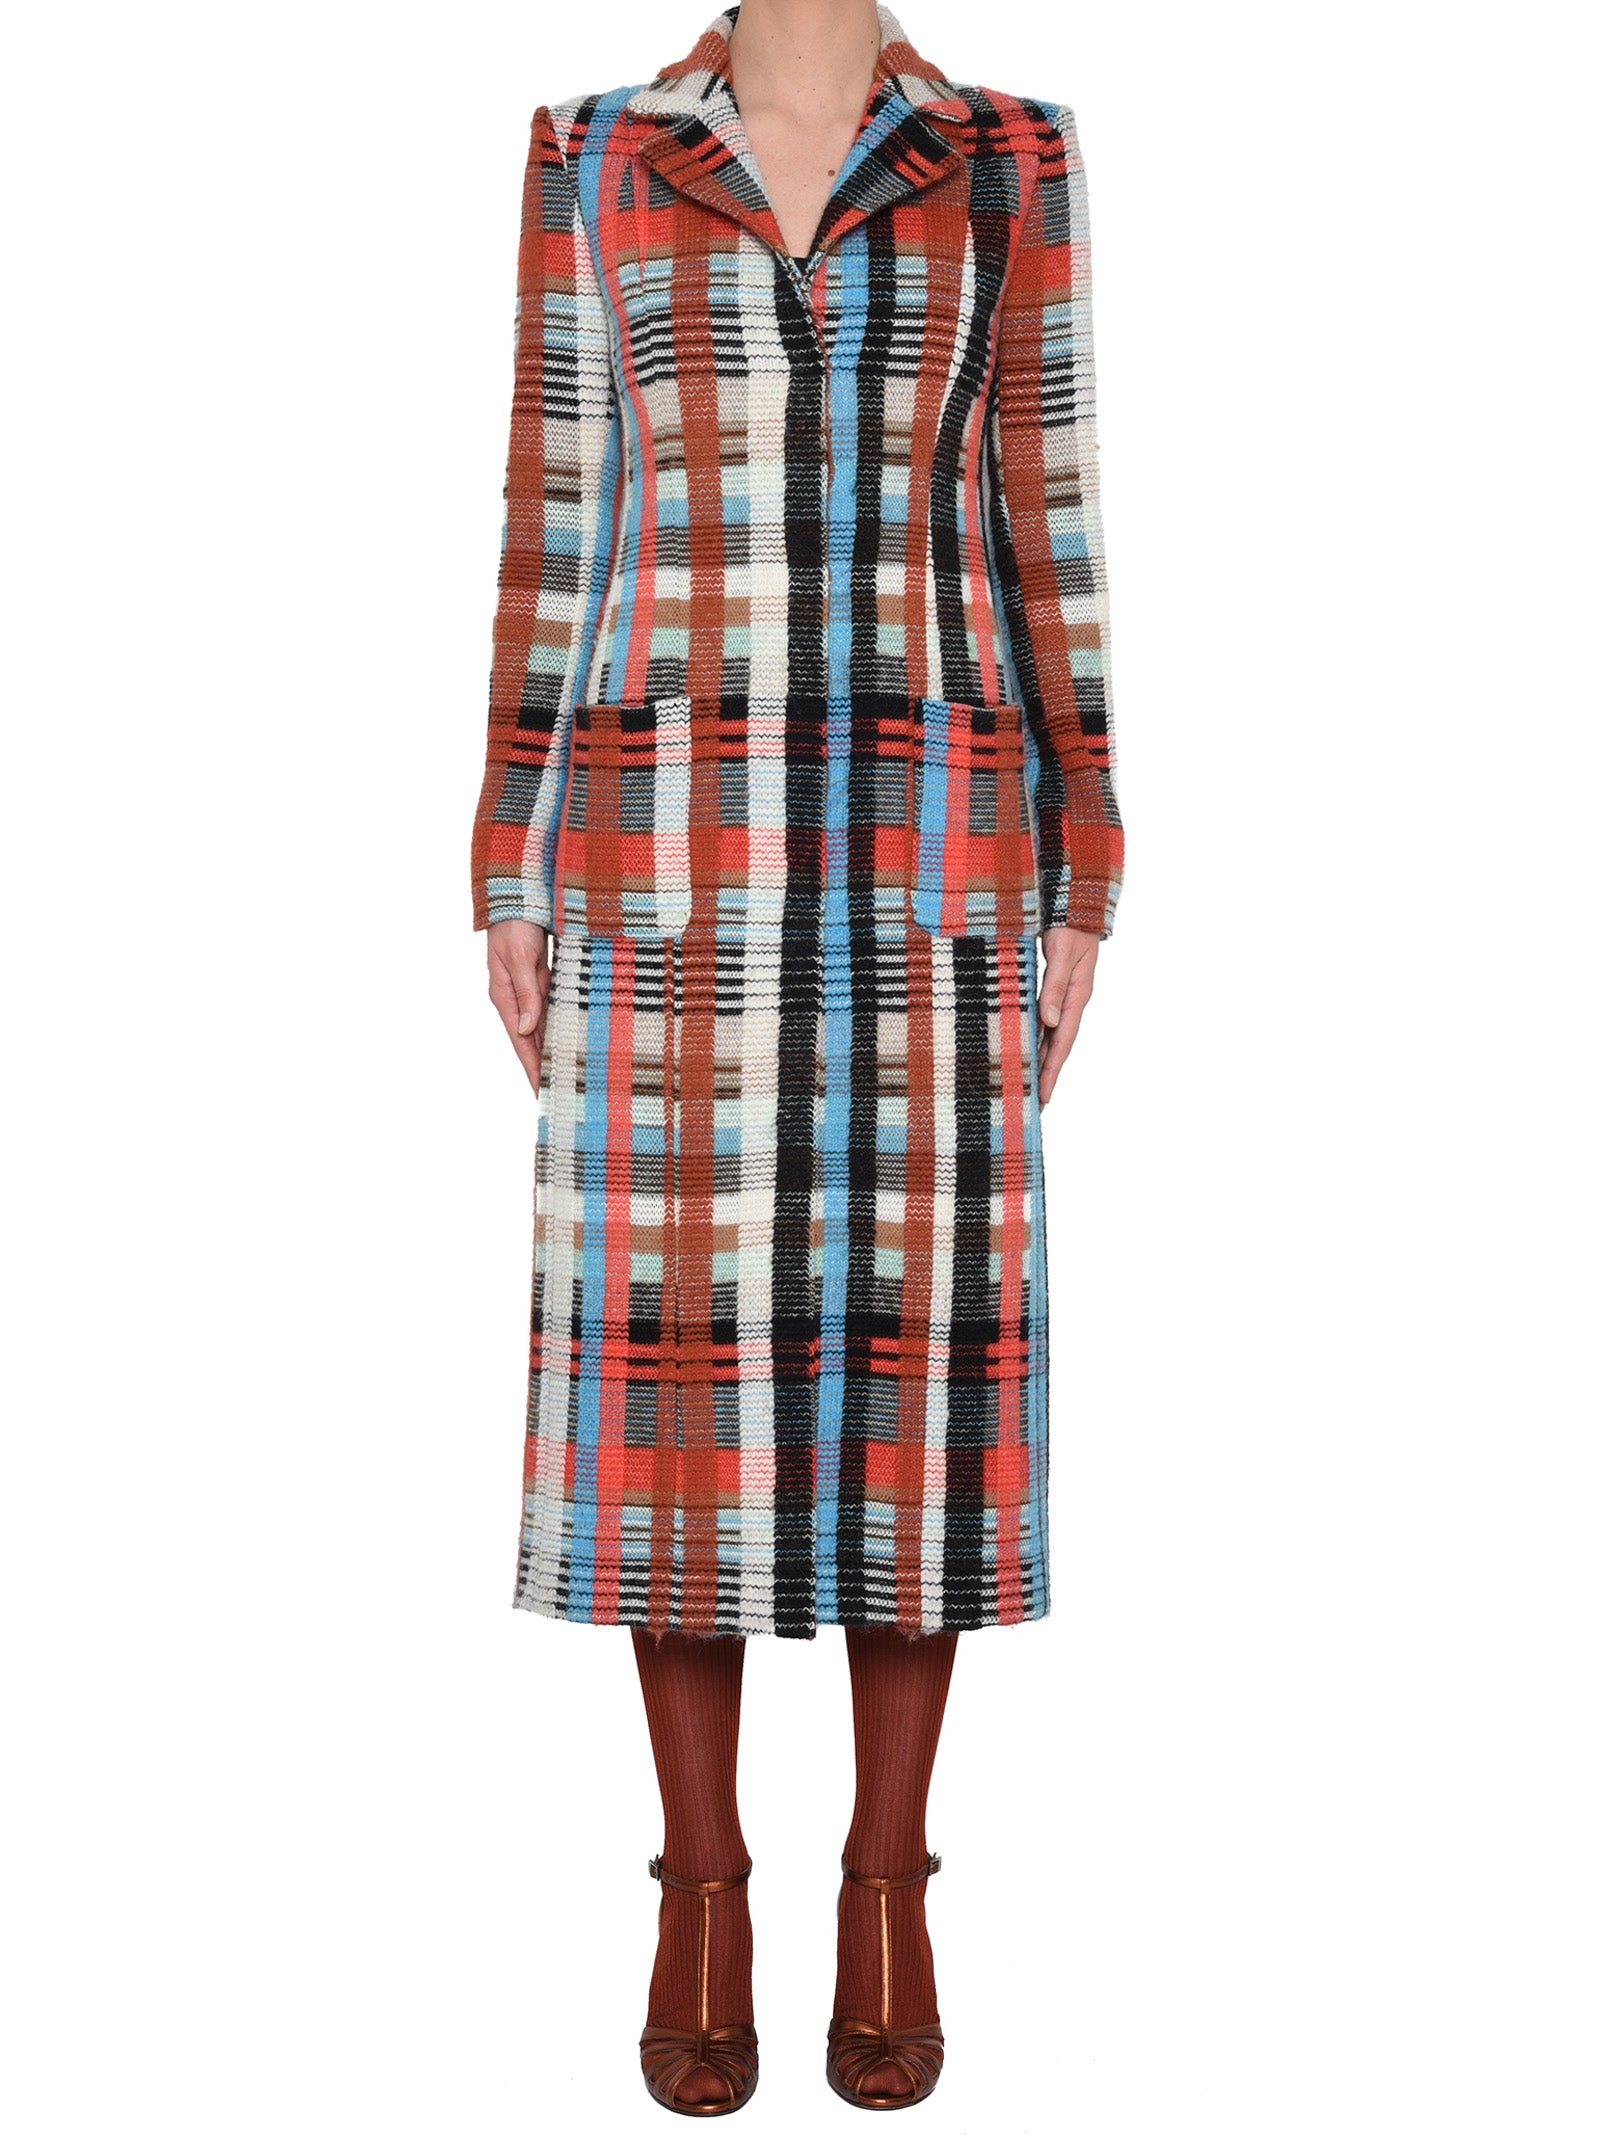 Missoni MISSONI MULTICOLOUR STRIPED LONG COAT